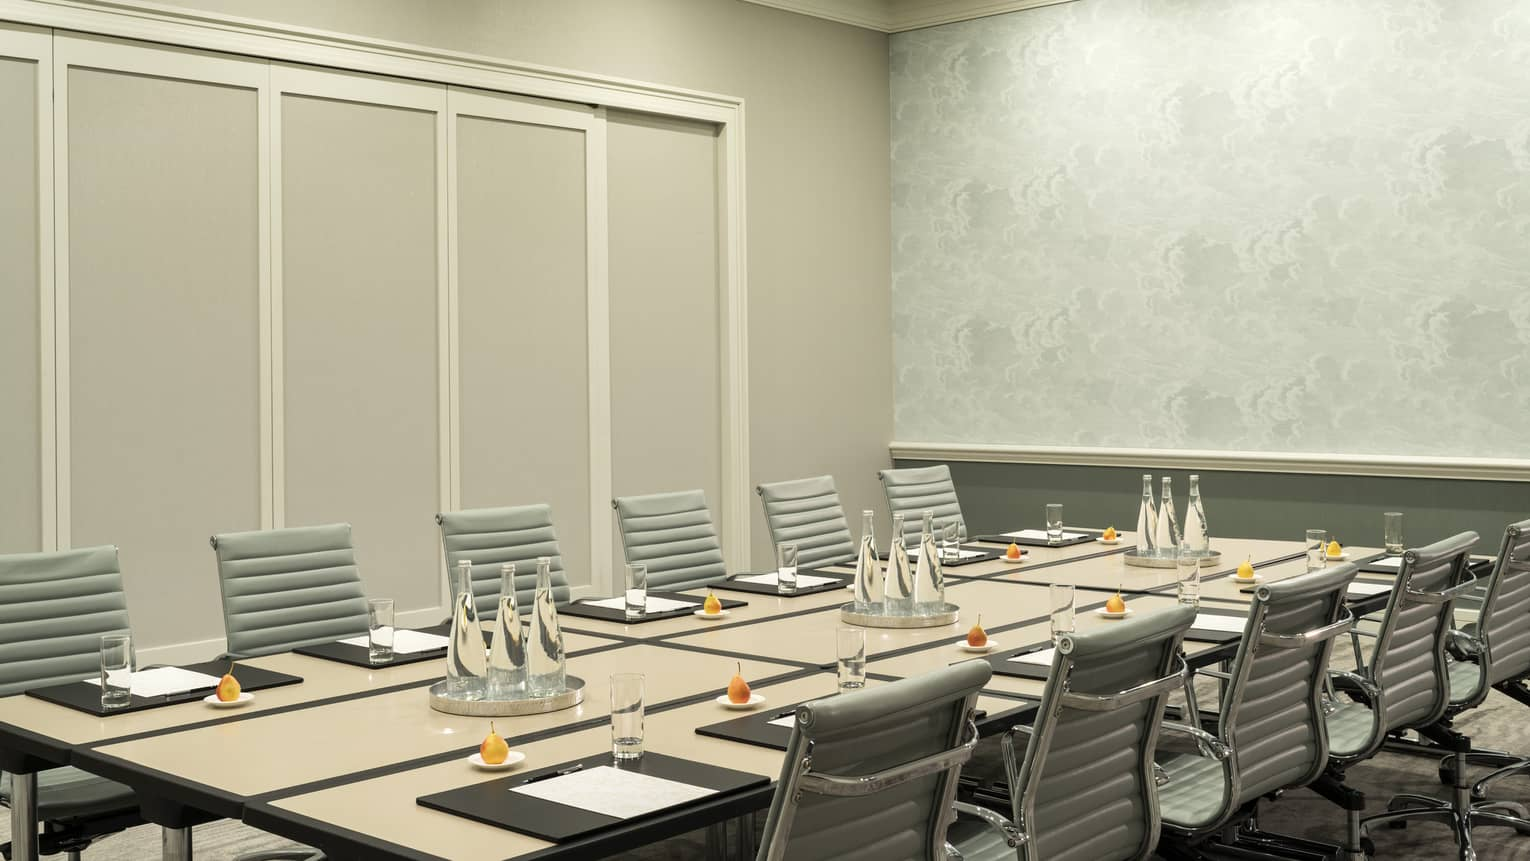 Leather chairs around large rectangular boardroom meeting table with bottles of waters, fresh fruit